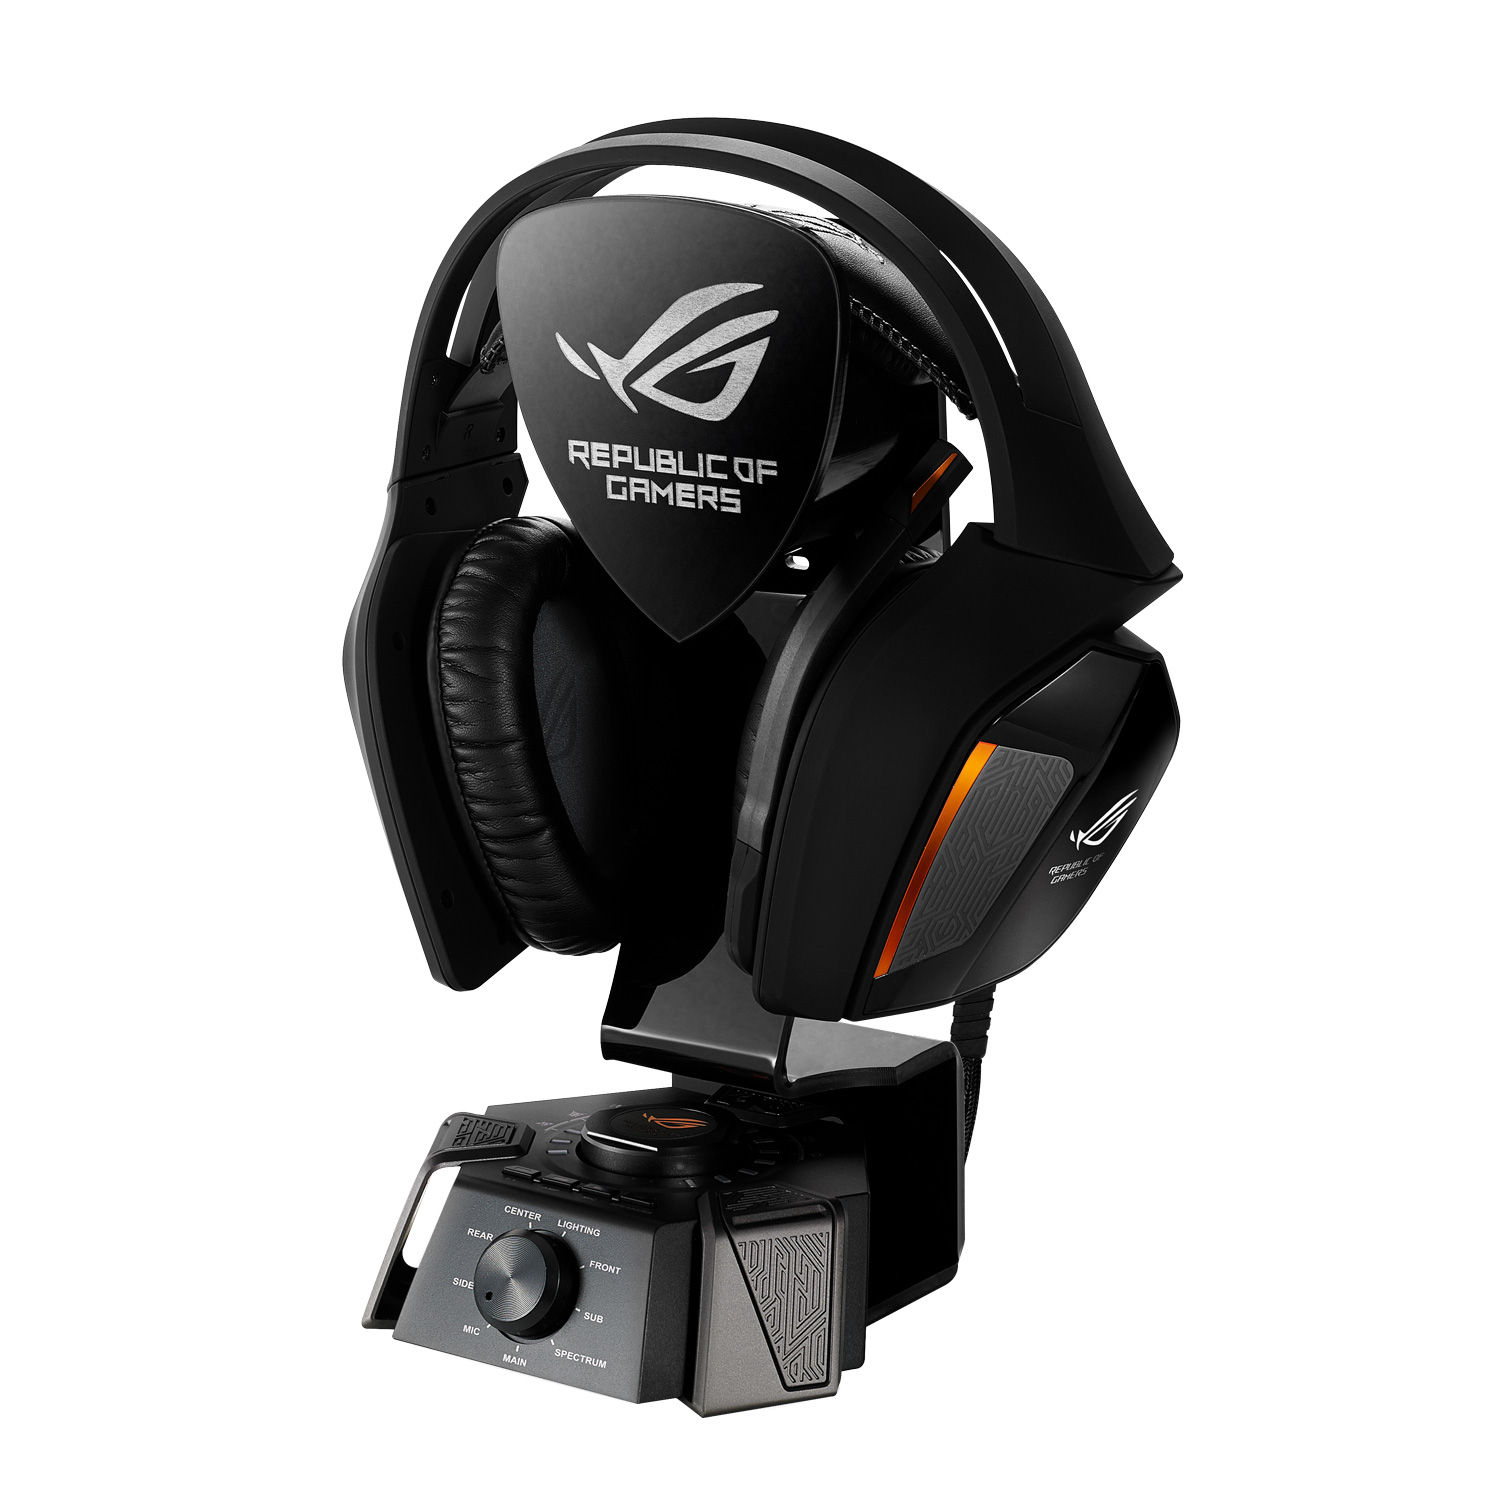 asus rog support casque achat pas cher avis. Black Bedroom Furniture Sets. Home Design Ideas